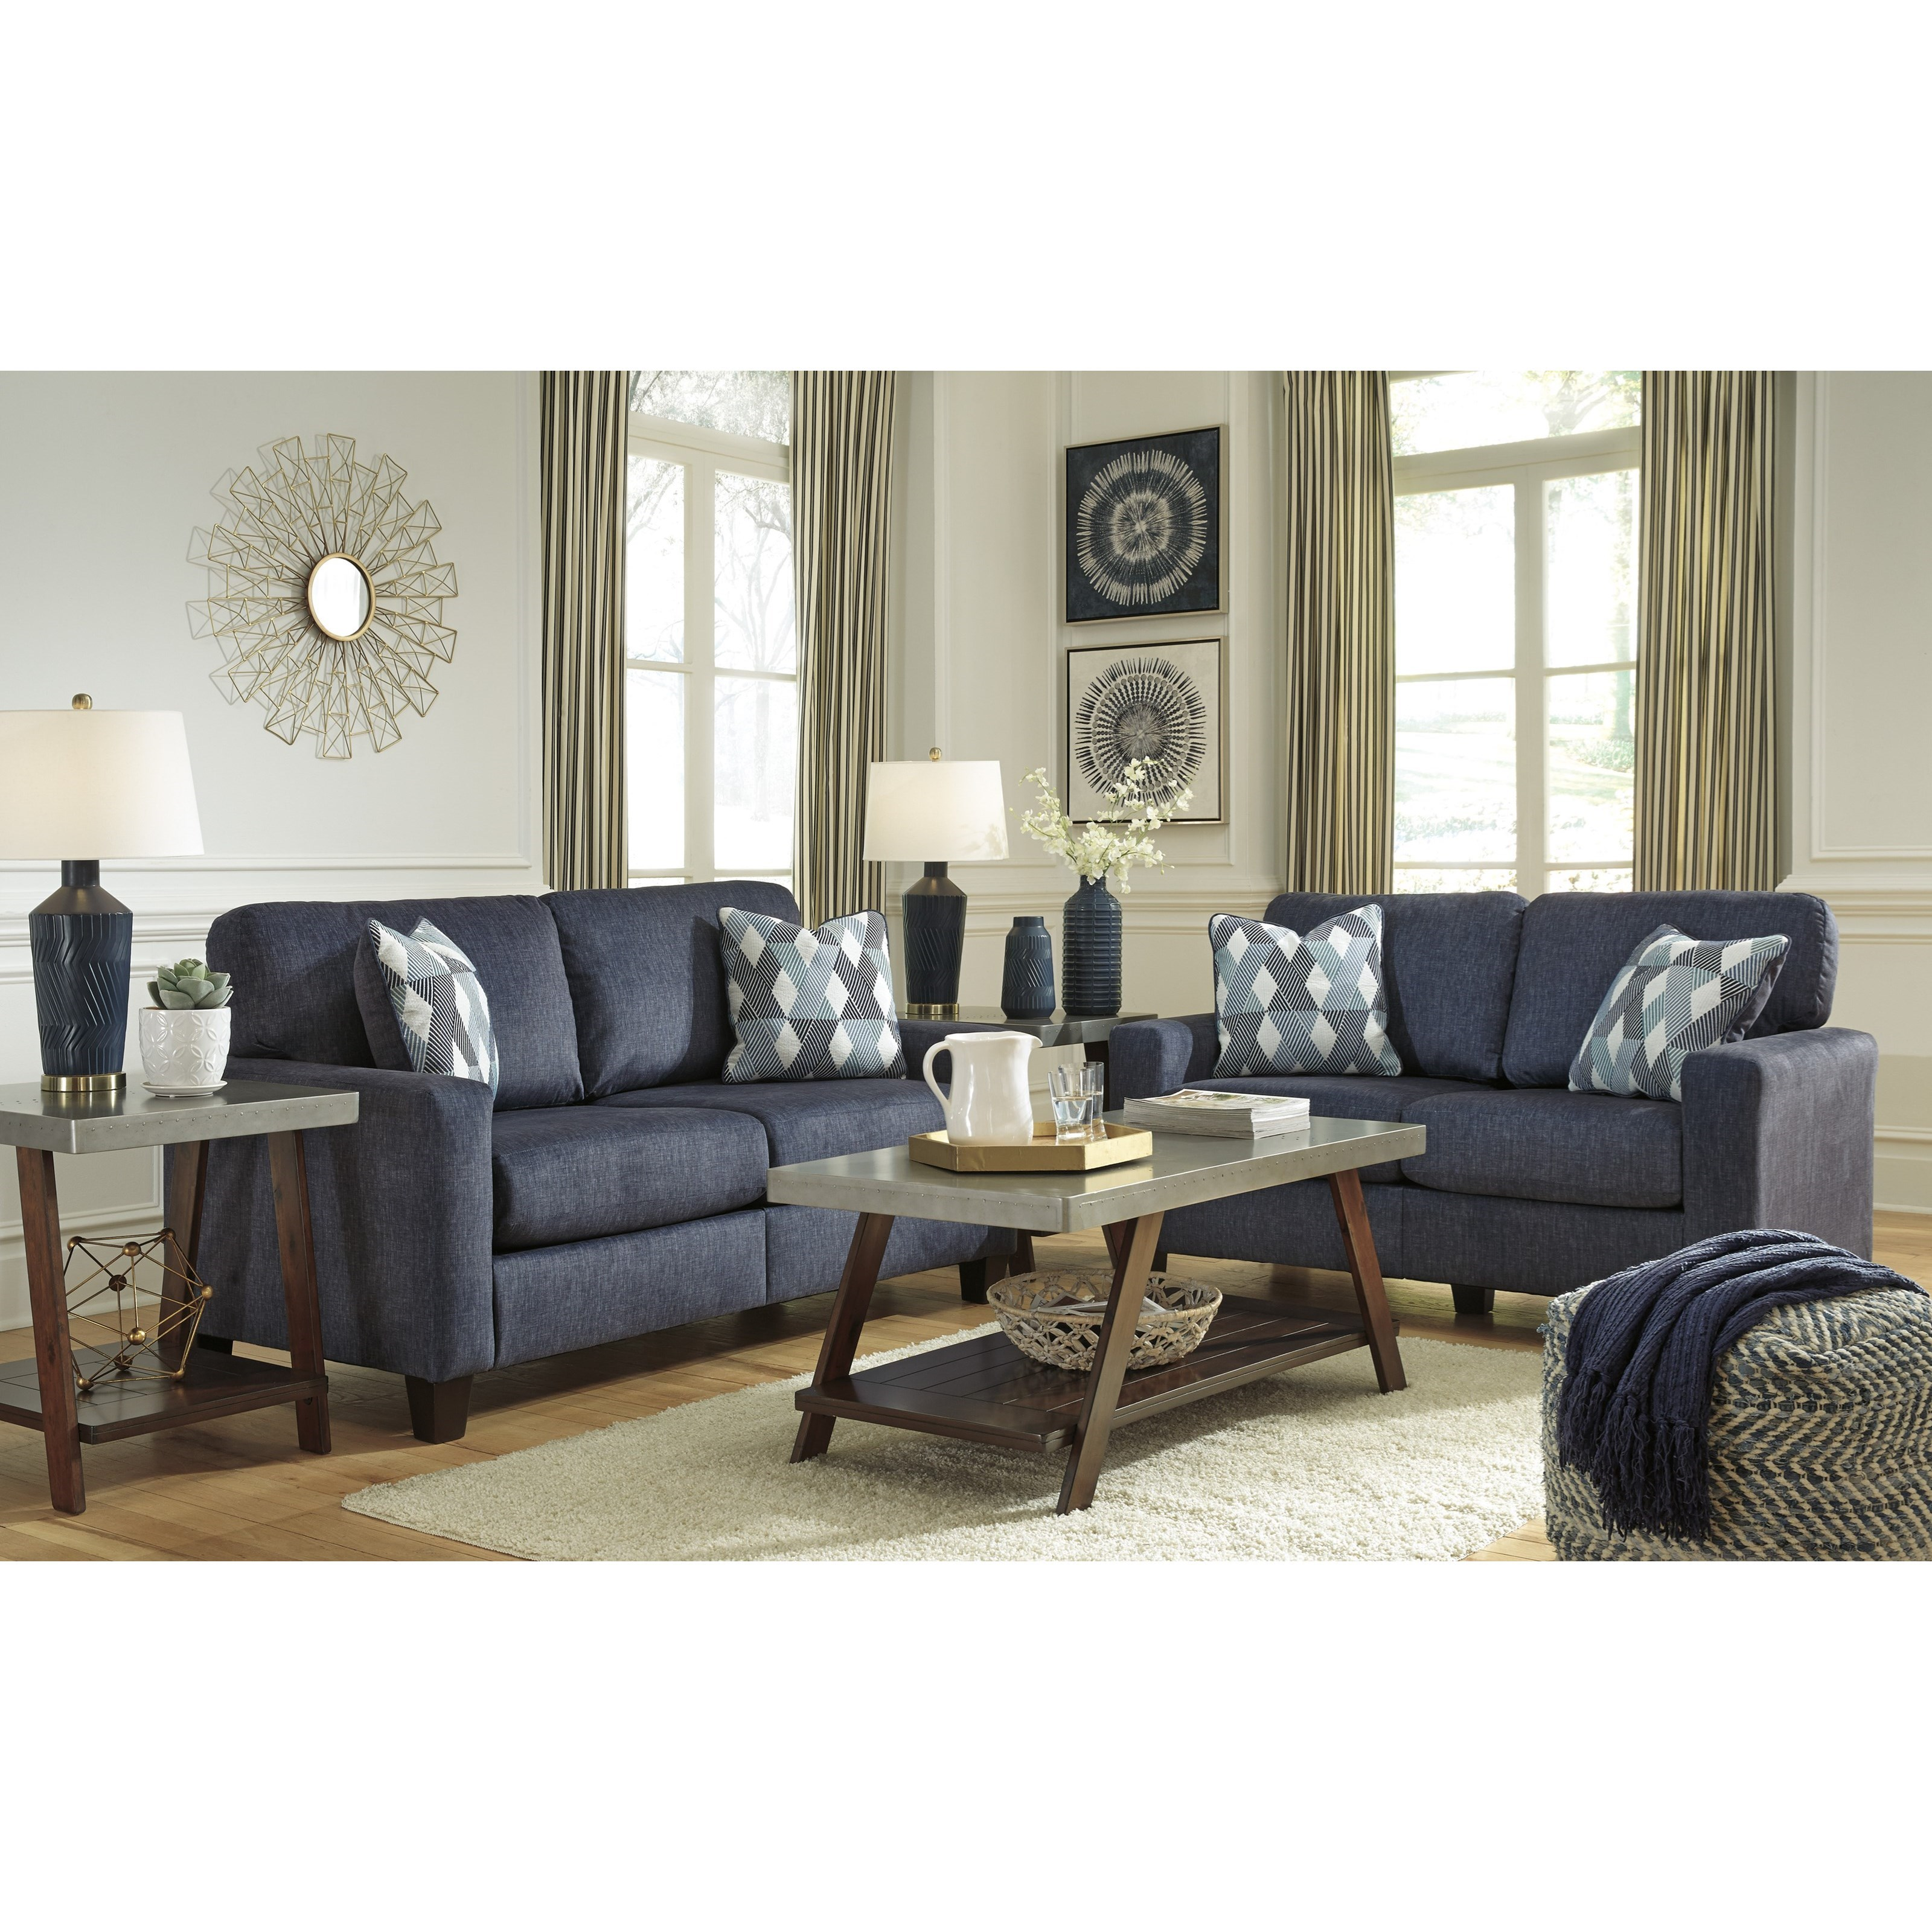 Ashley City Furniture: Signature Design By Ashley Burgos Living Room Group